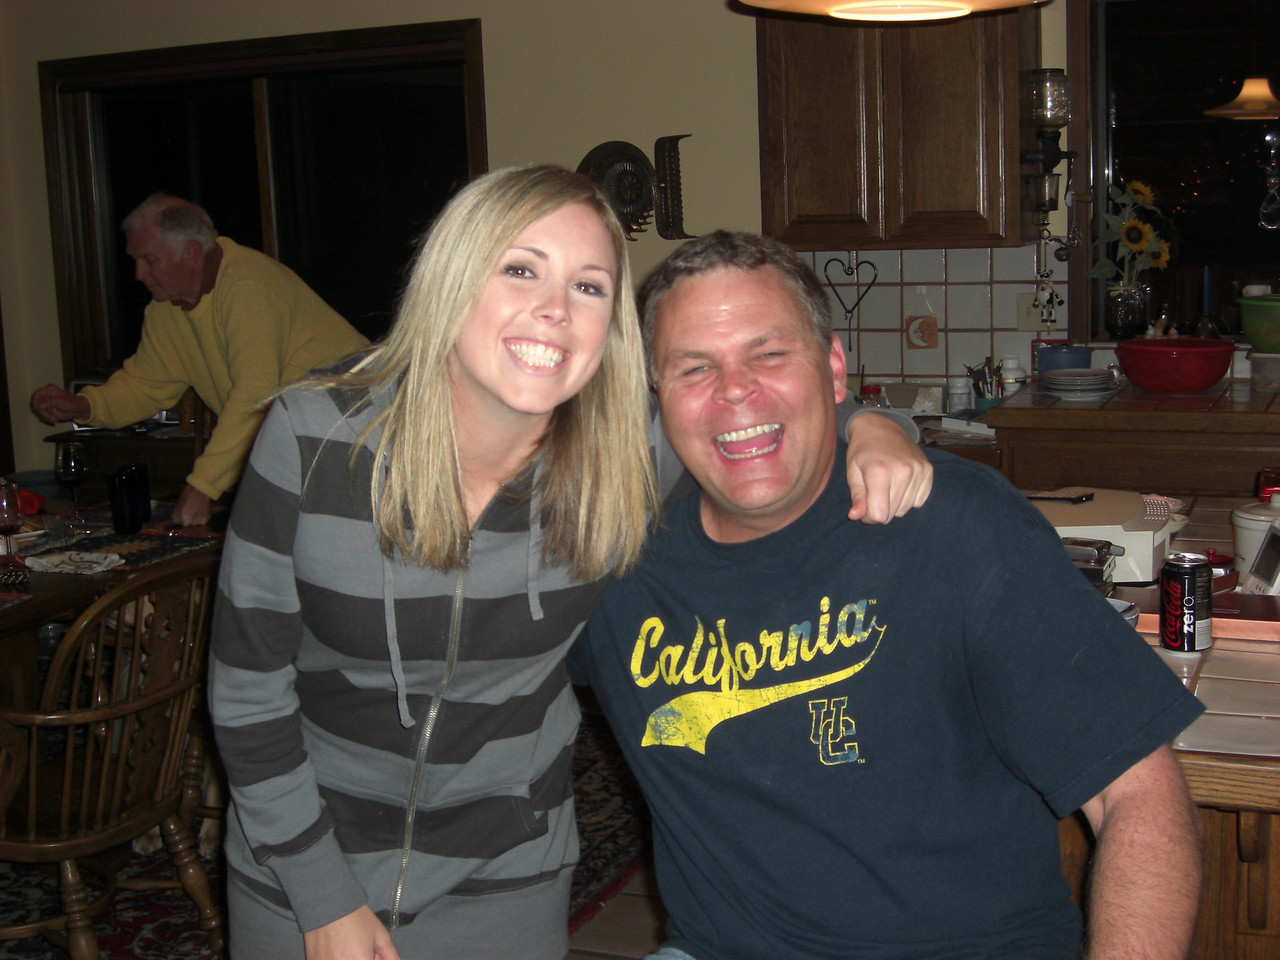 Courtney and Karl